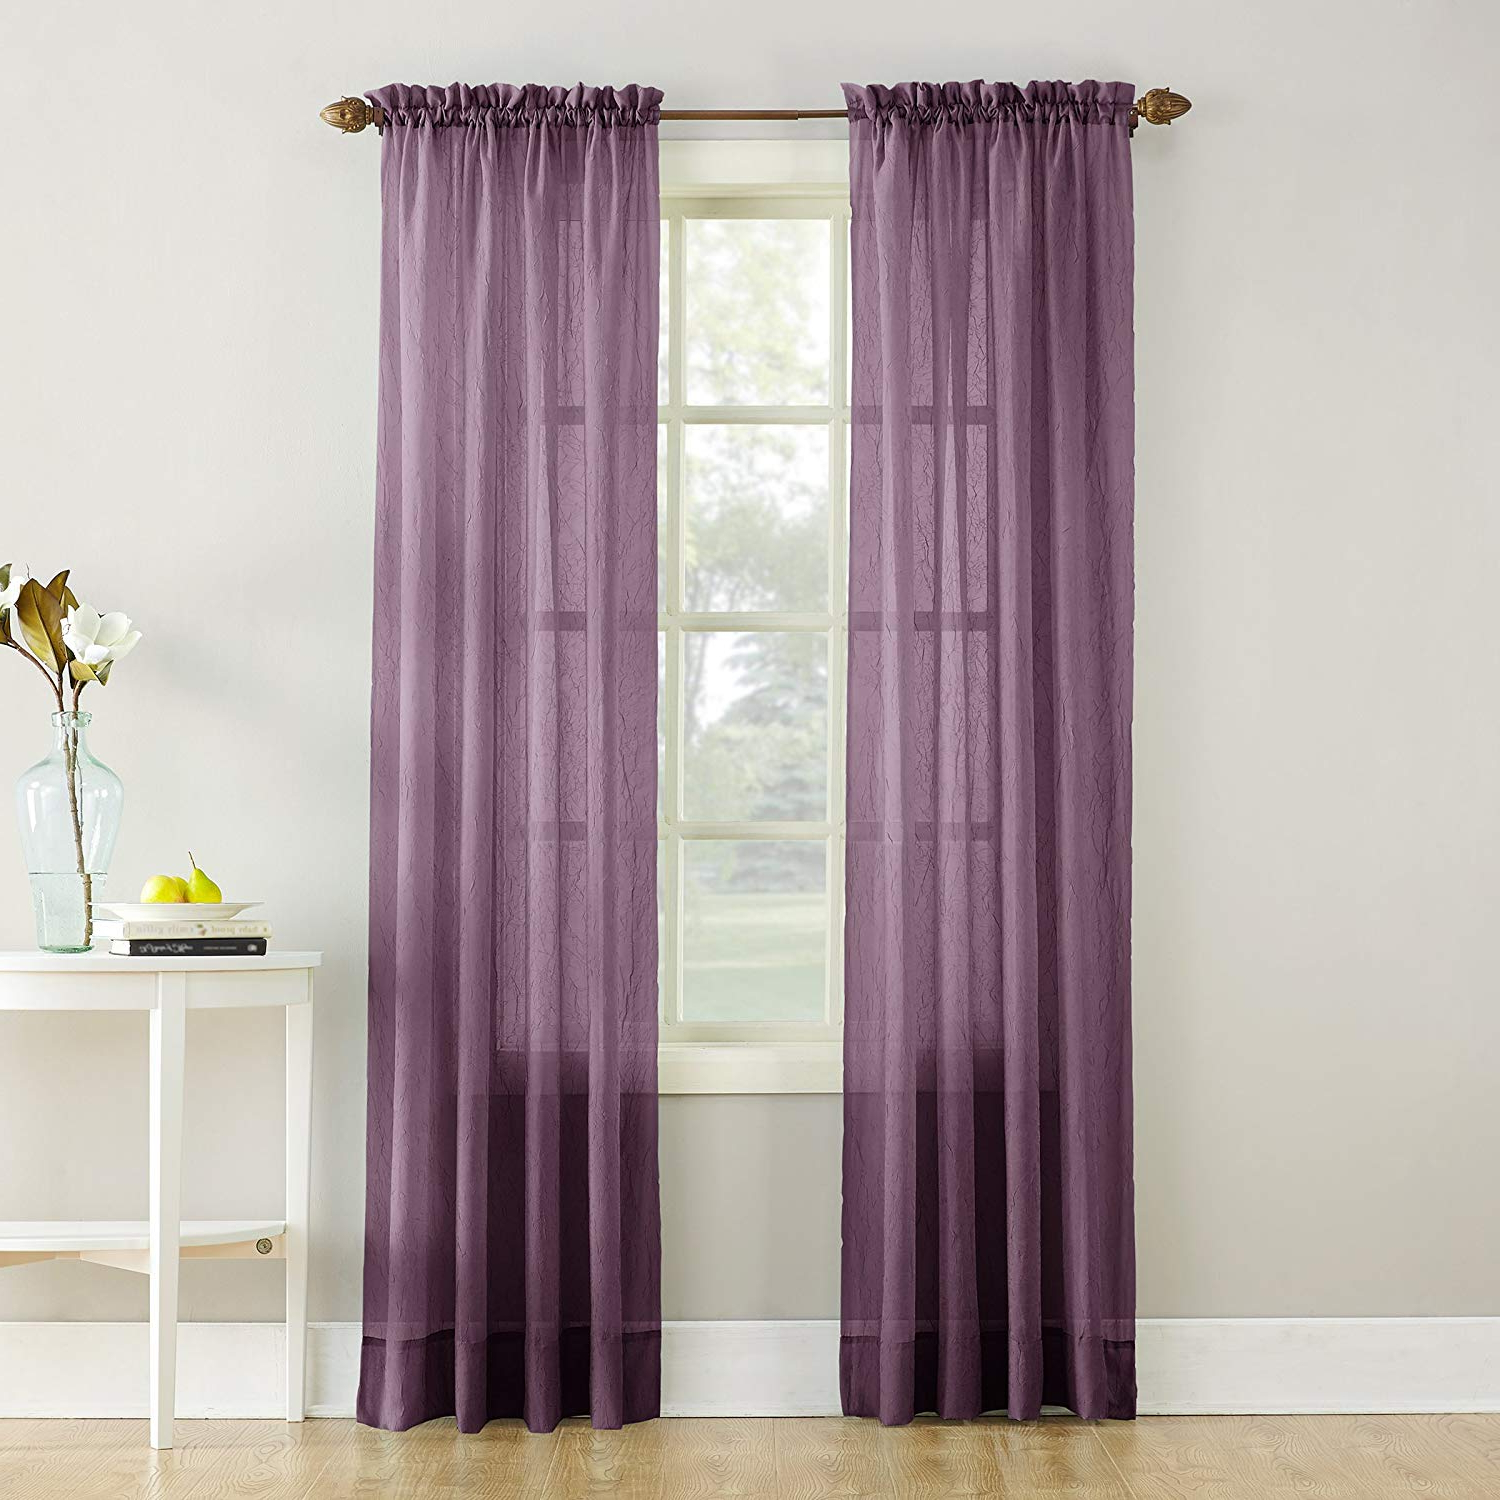 Well Known Erica Sheer Crushed Voile Single Curtain Panels In No (View 2 of 20)